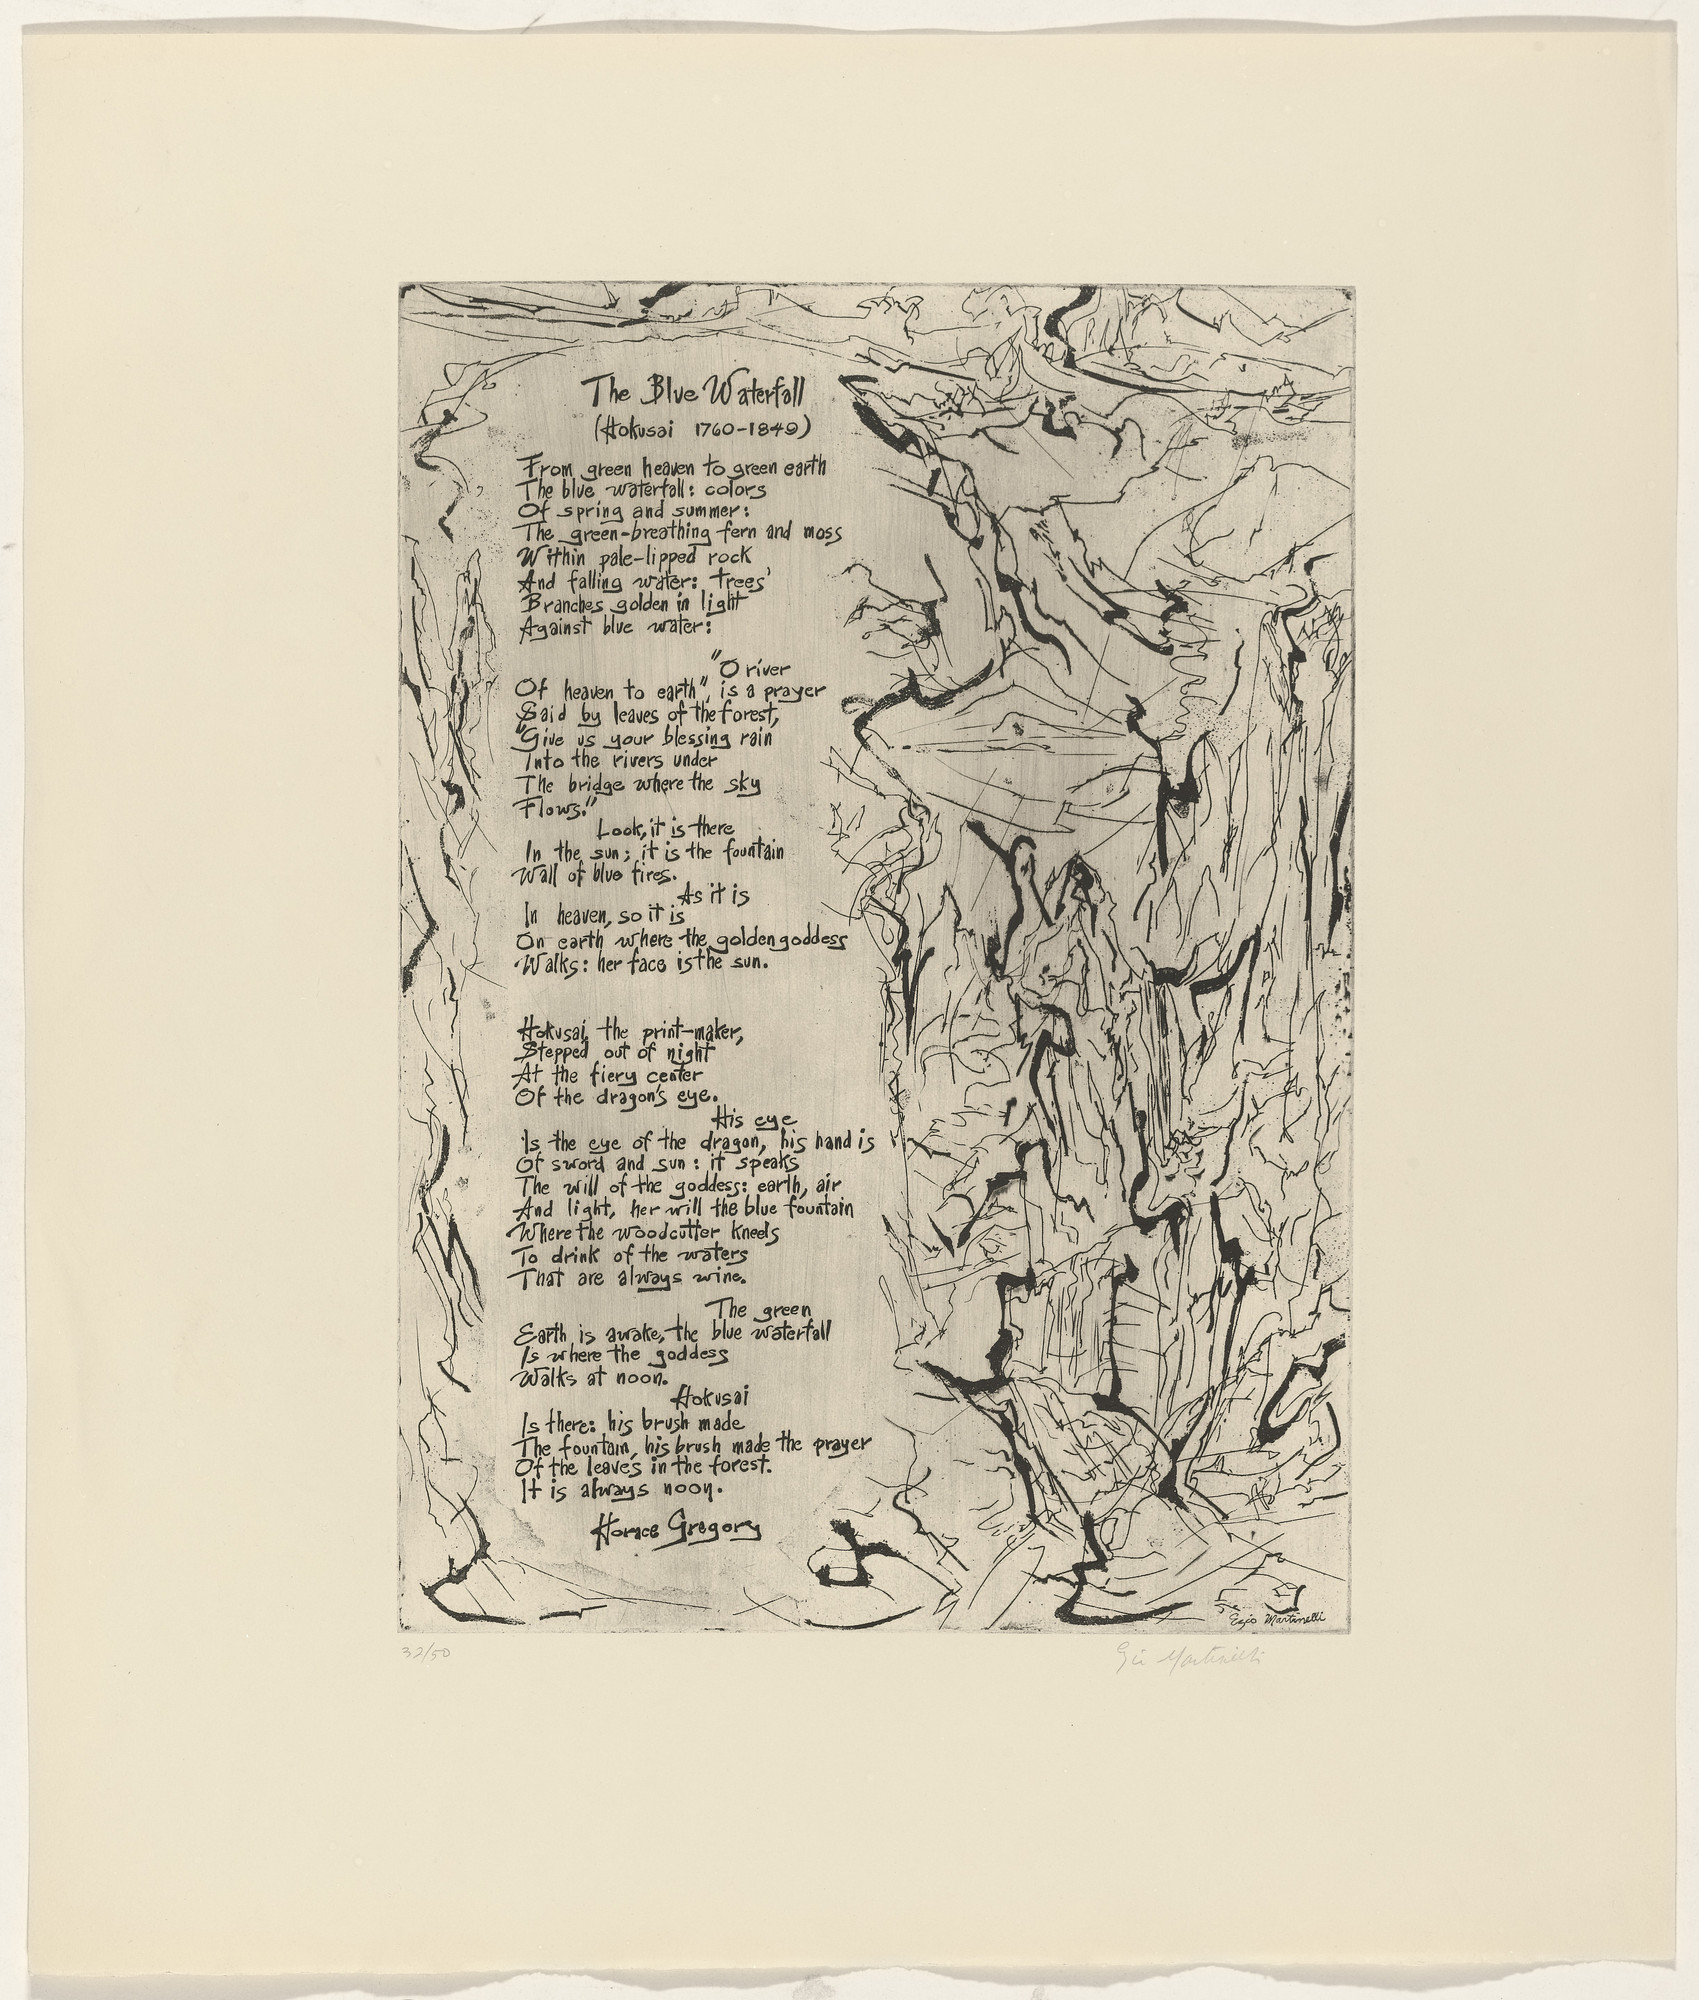 Ezio Martinelli, Horace Gregory. In-text plate (folio 14) from 21 Etchings and Poems. 1960